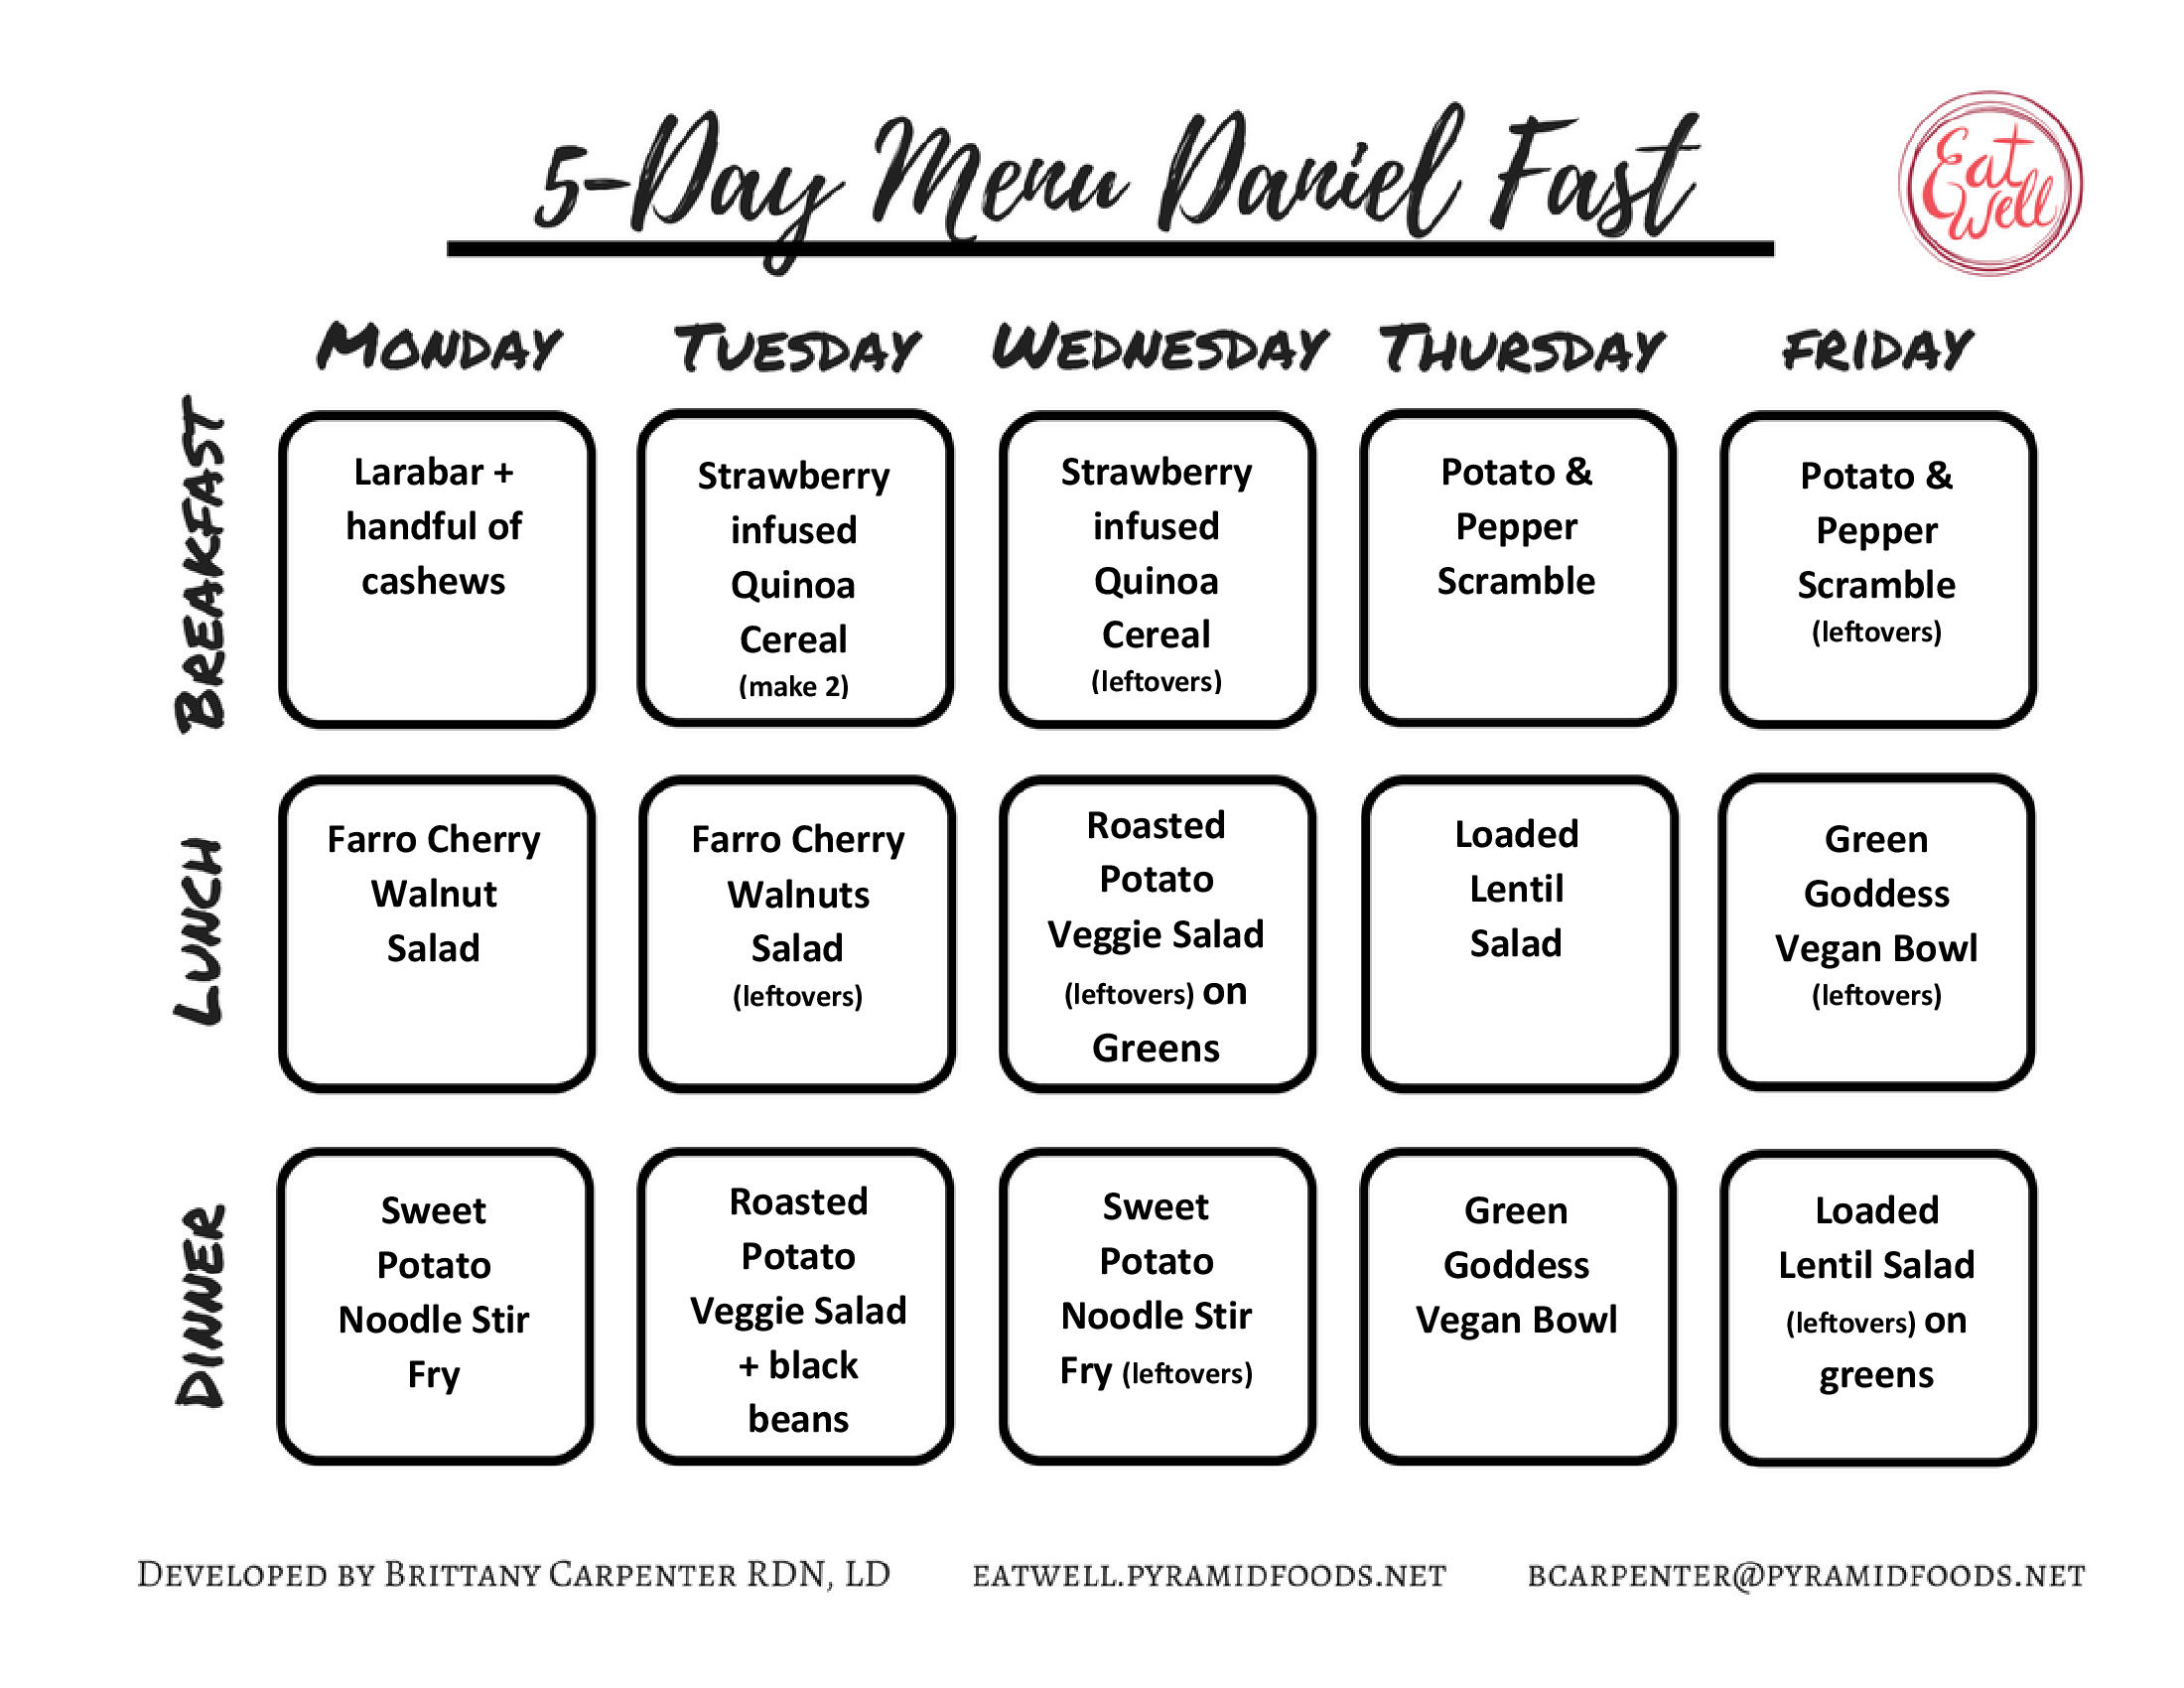 Daniel Fast 2 5 Day Menus With Recipes Eat Well Dietitians Daniel Fast Daniel Fast Recipes Daniel Fast Meal Plan